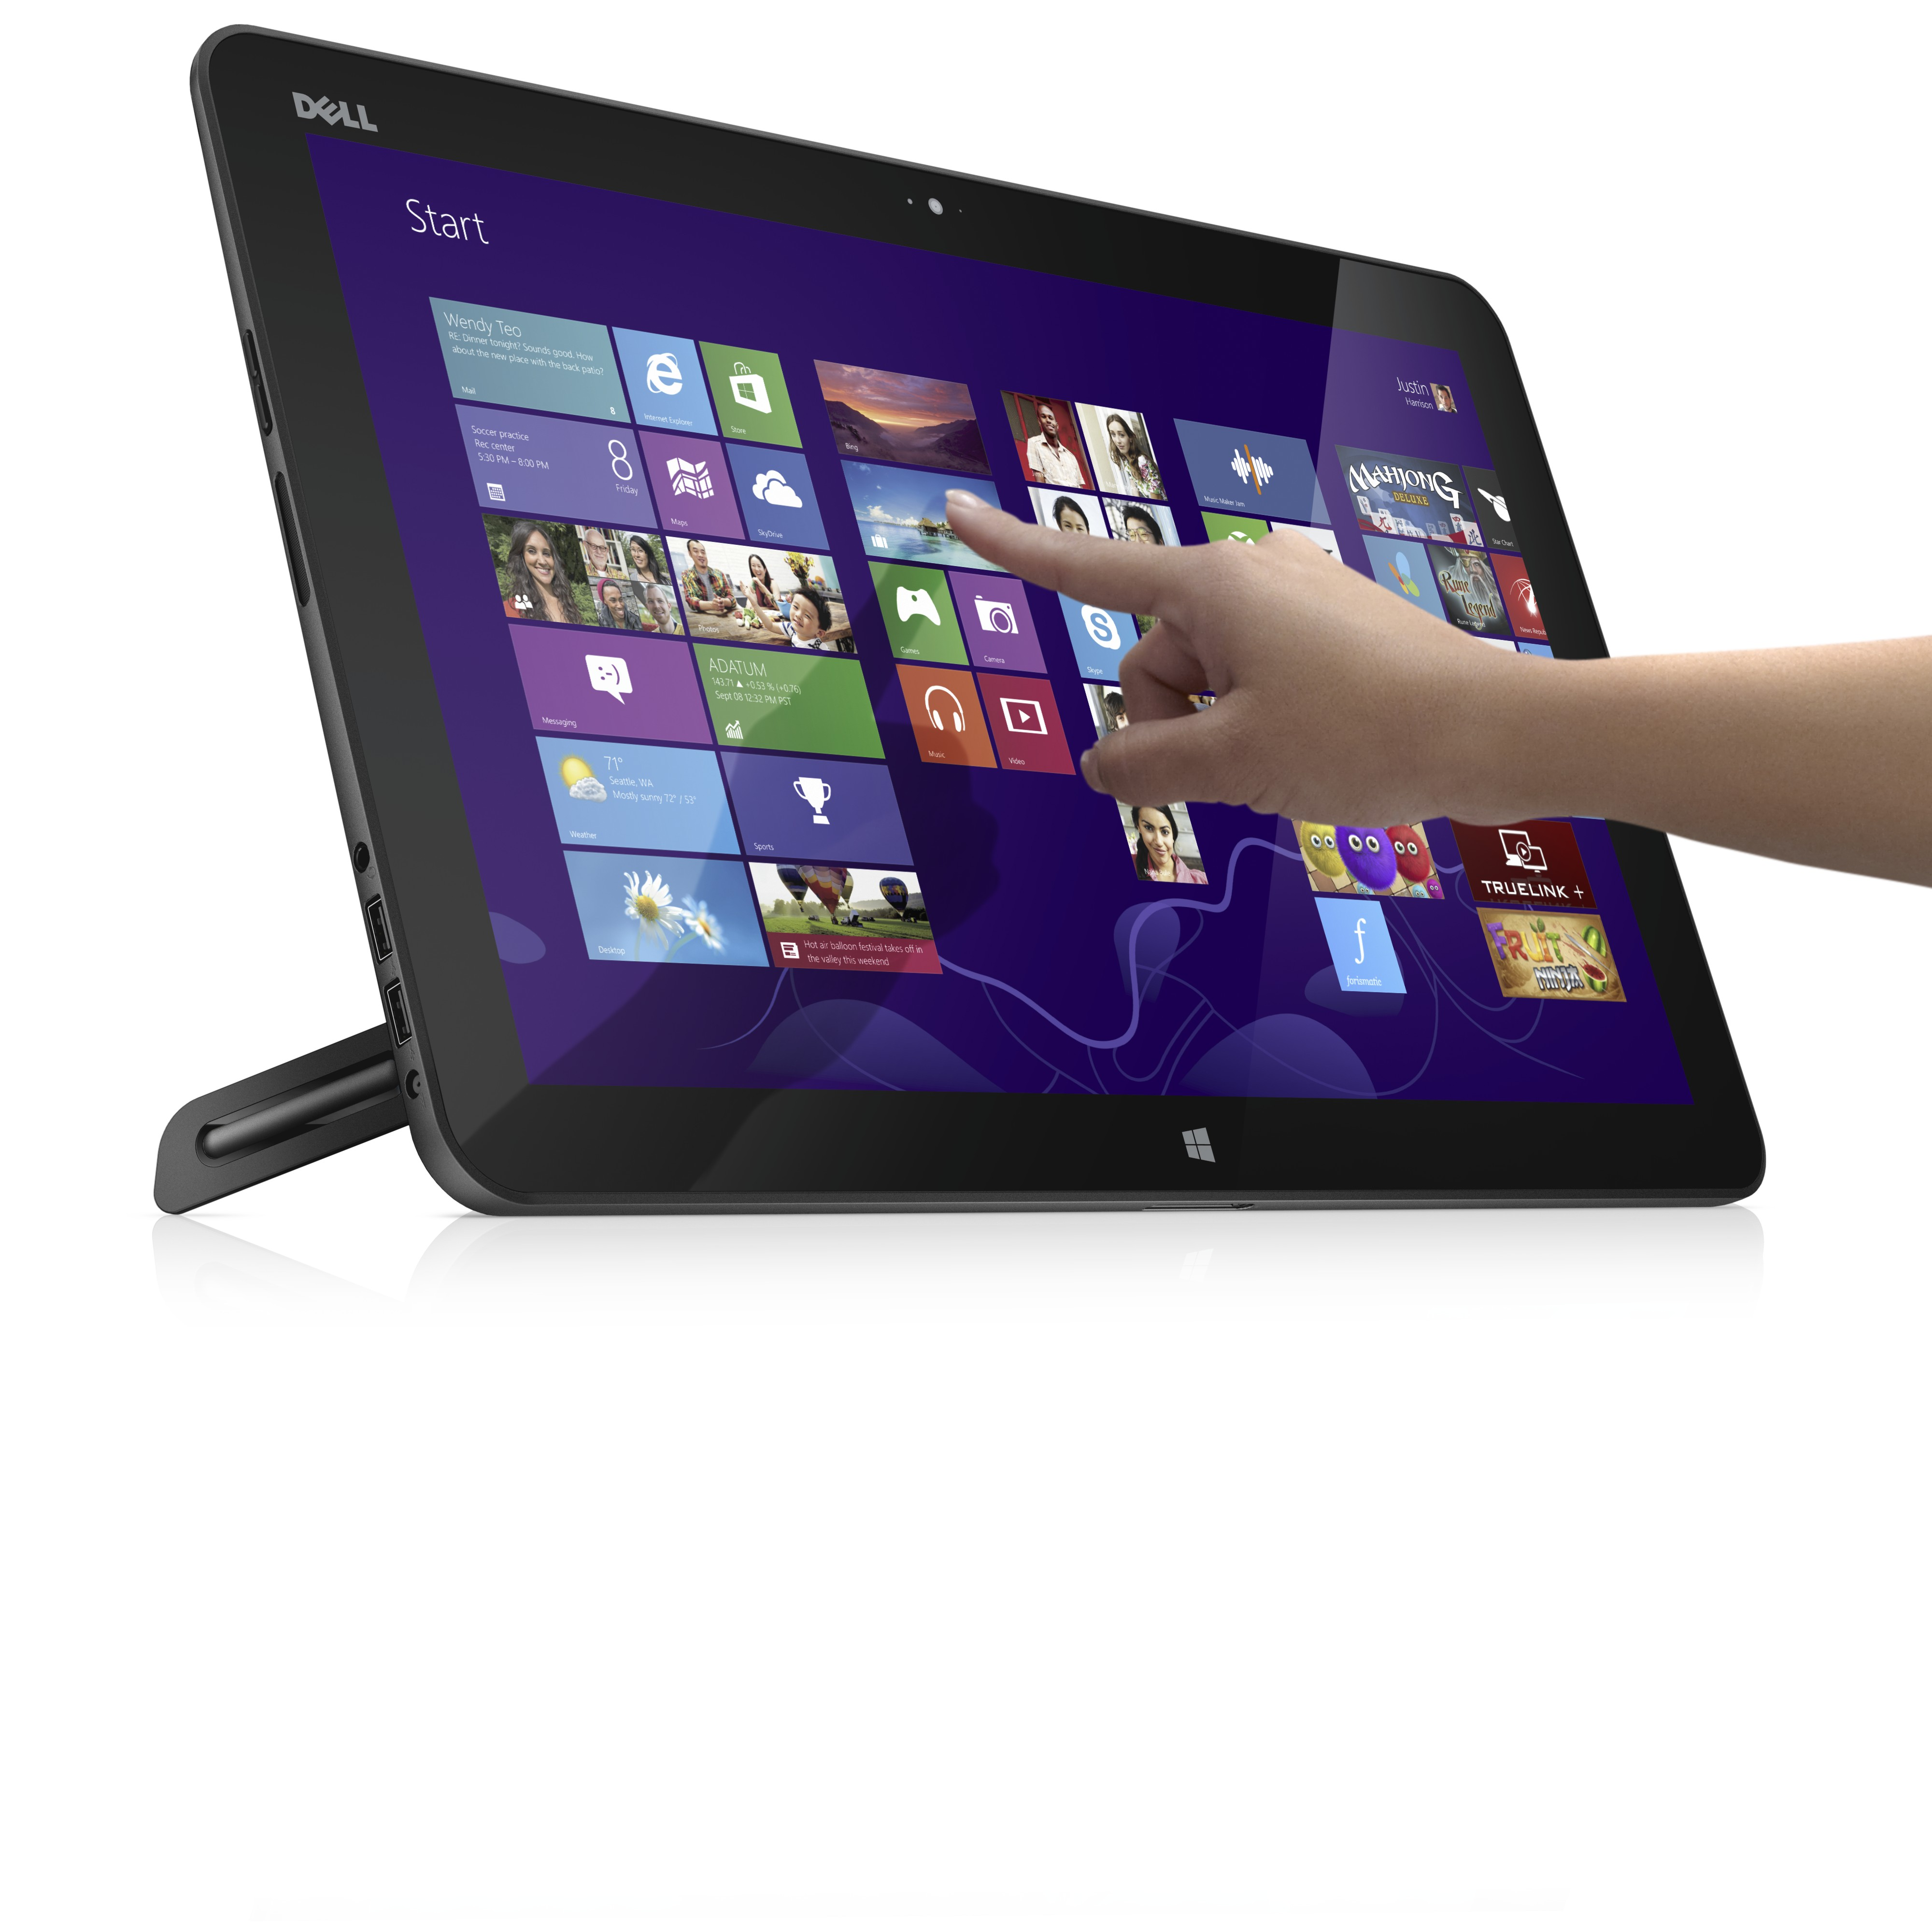 Dell launches new tablets and XPS laptops